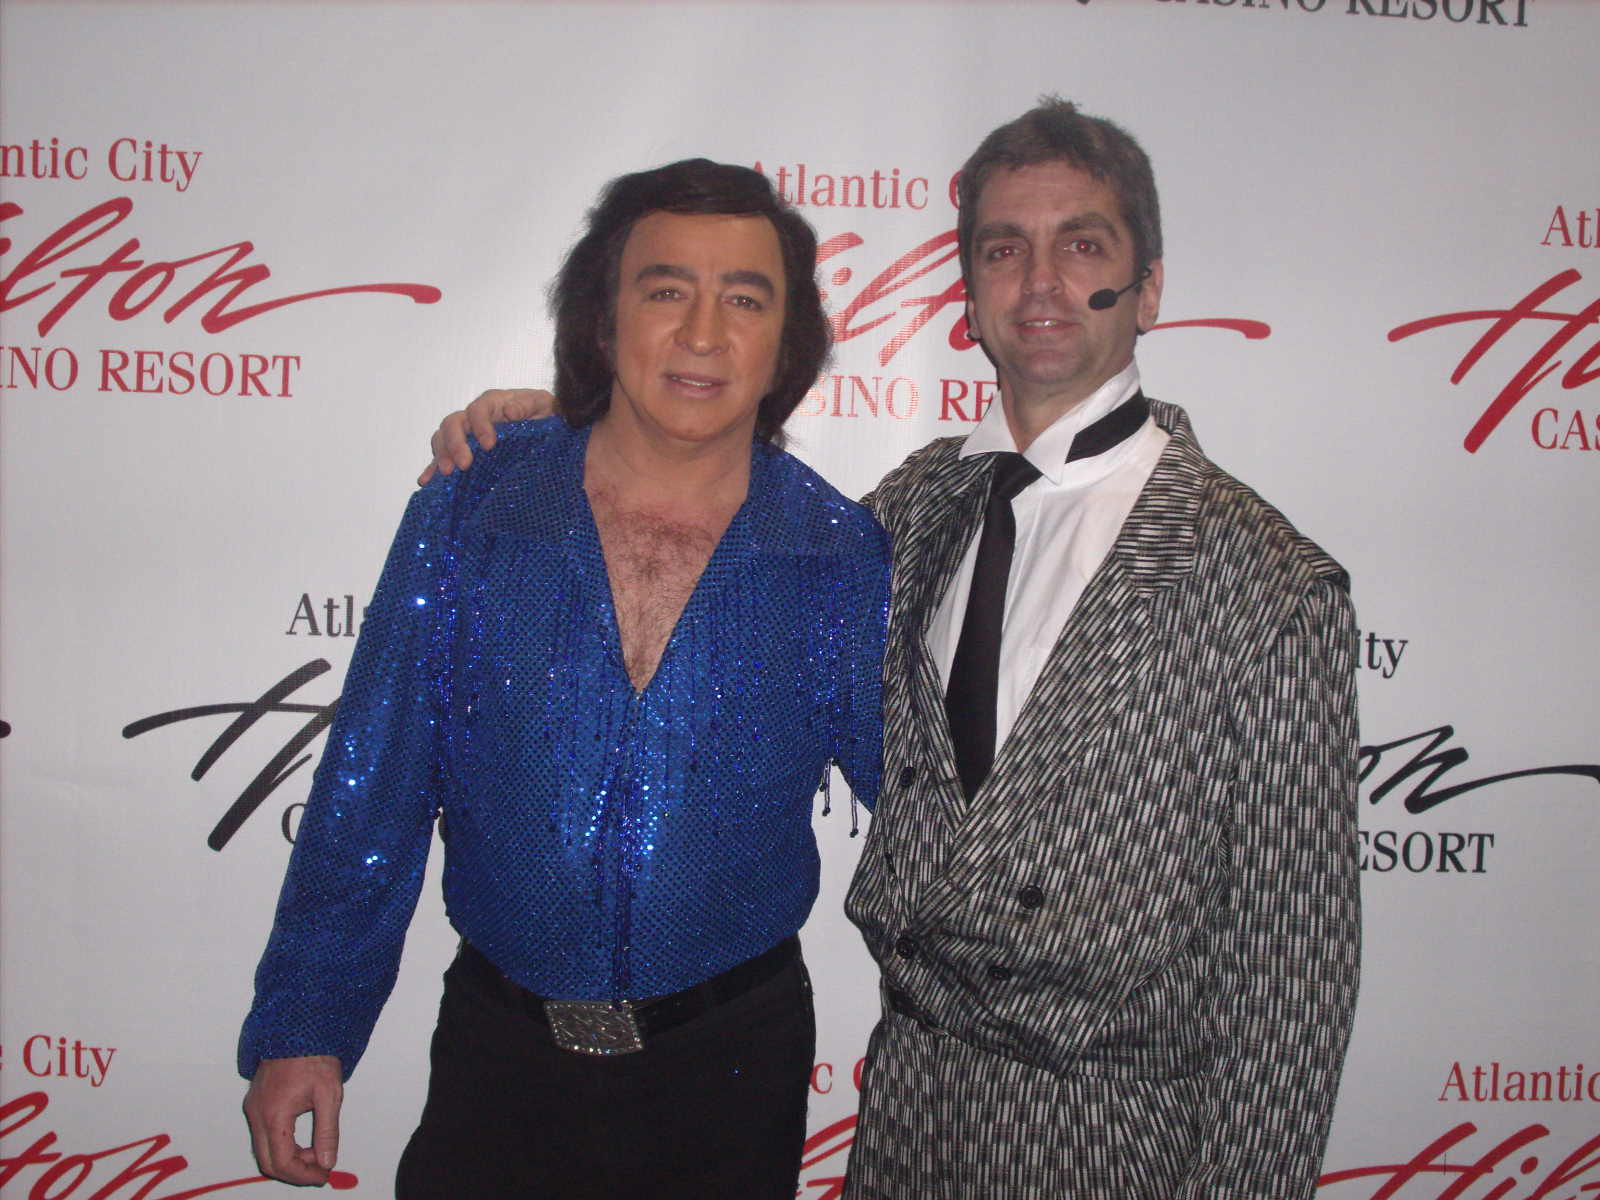 Tom Sadge as Neil Diamond and Glenn Singer, comedian of www.horseguy.com - Photo: Marion Sadge - webmaster of TomSadge.com